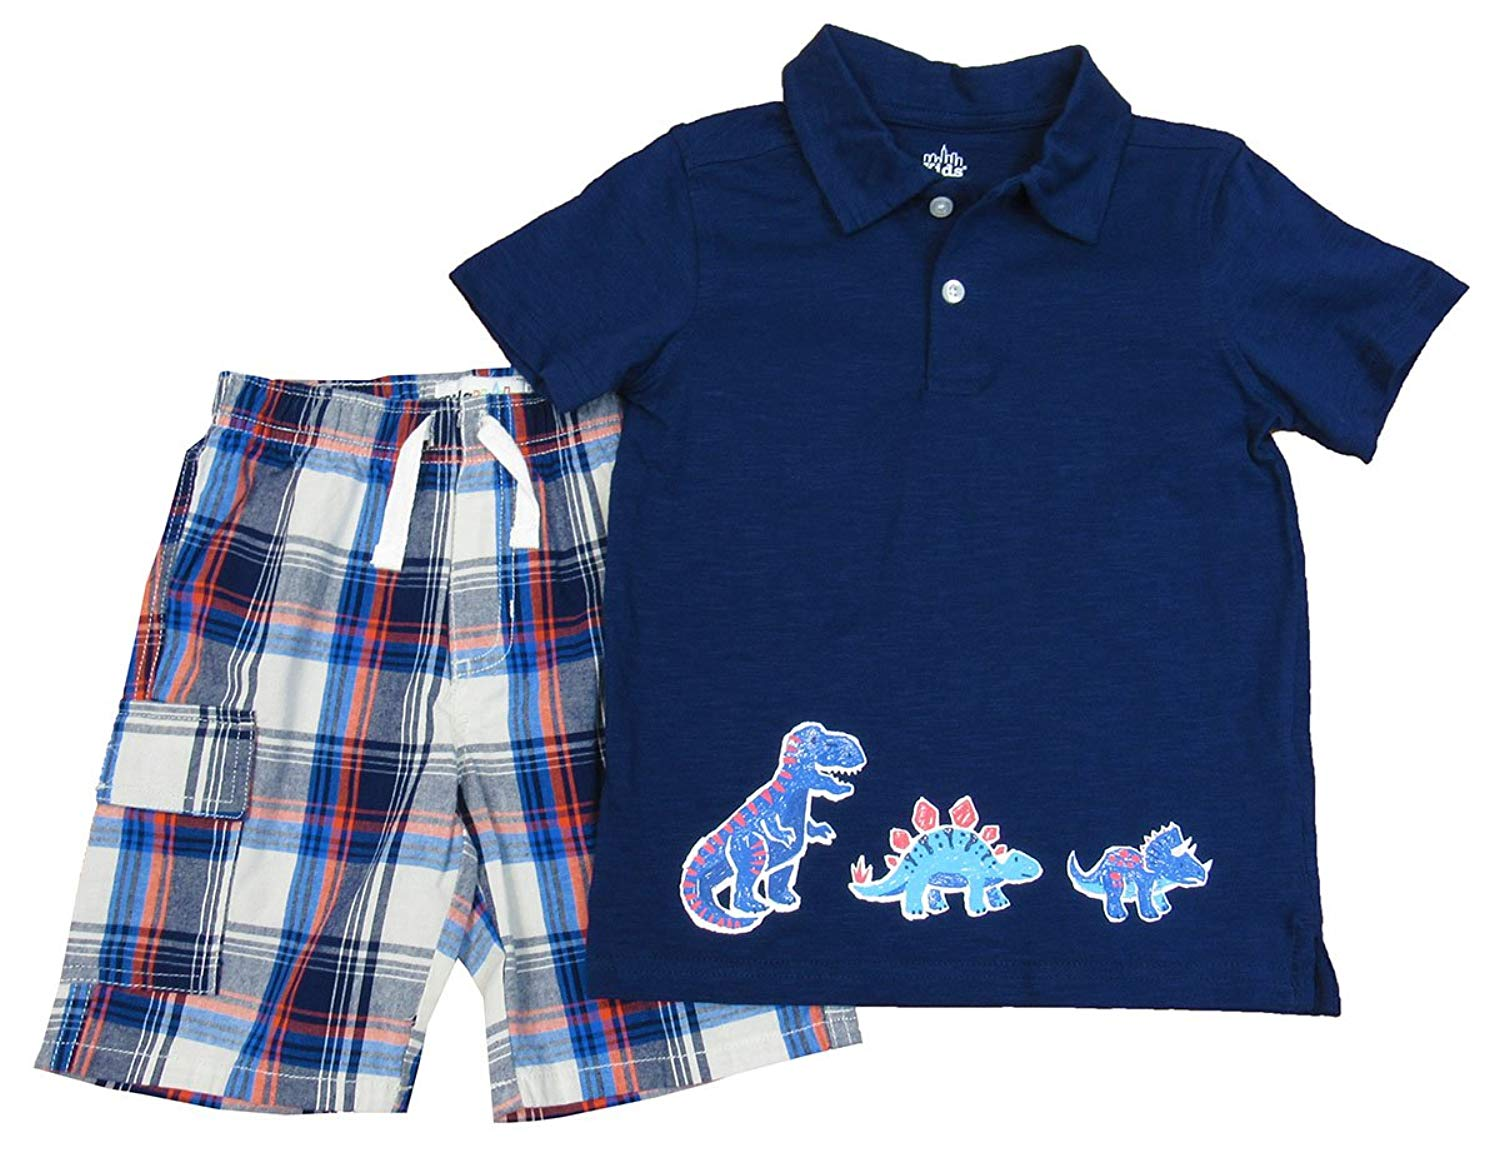 22582069c2ff Get Quotations · Kids Headquarters 2-pc. Little Boys Dino Polo and Plaid  Shorts Set Navy 4T